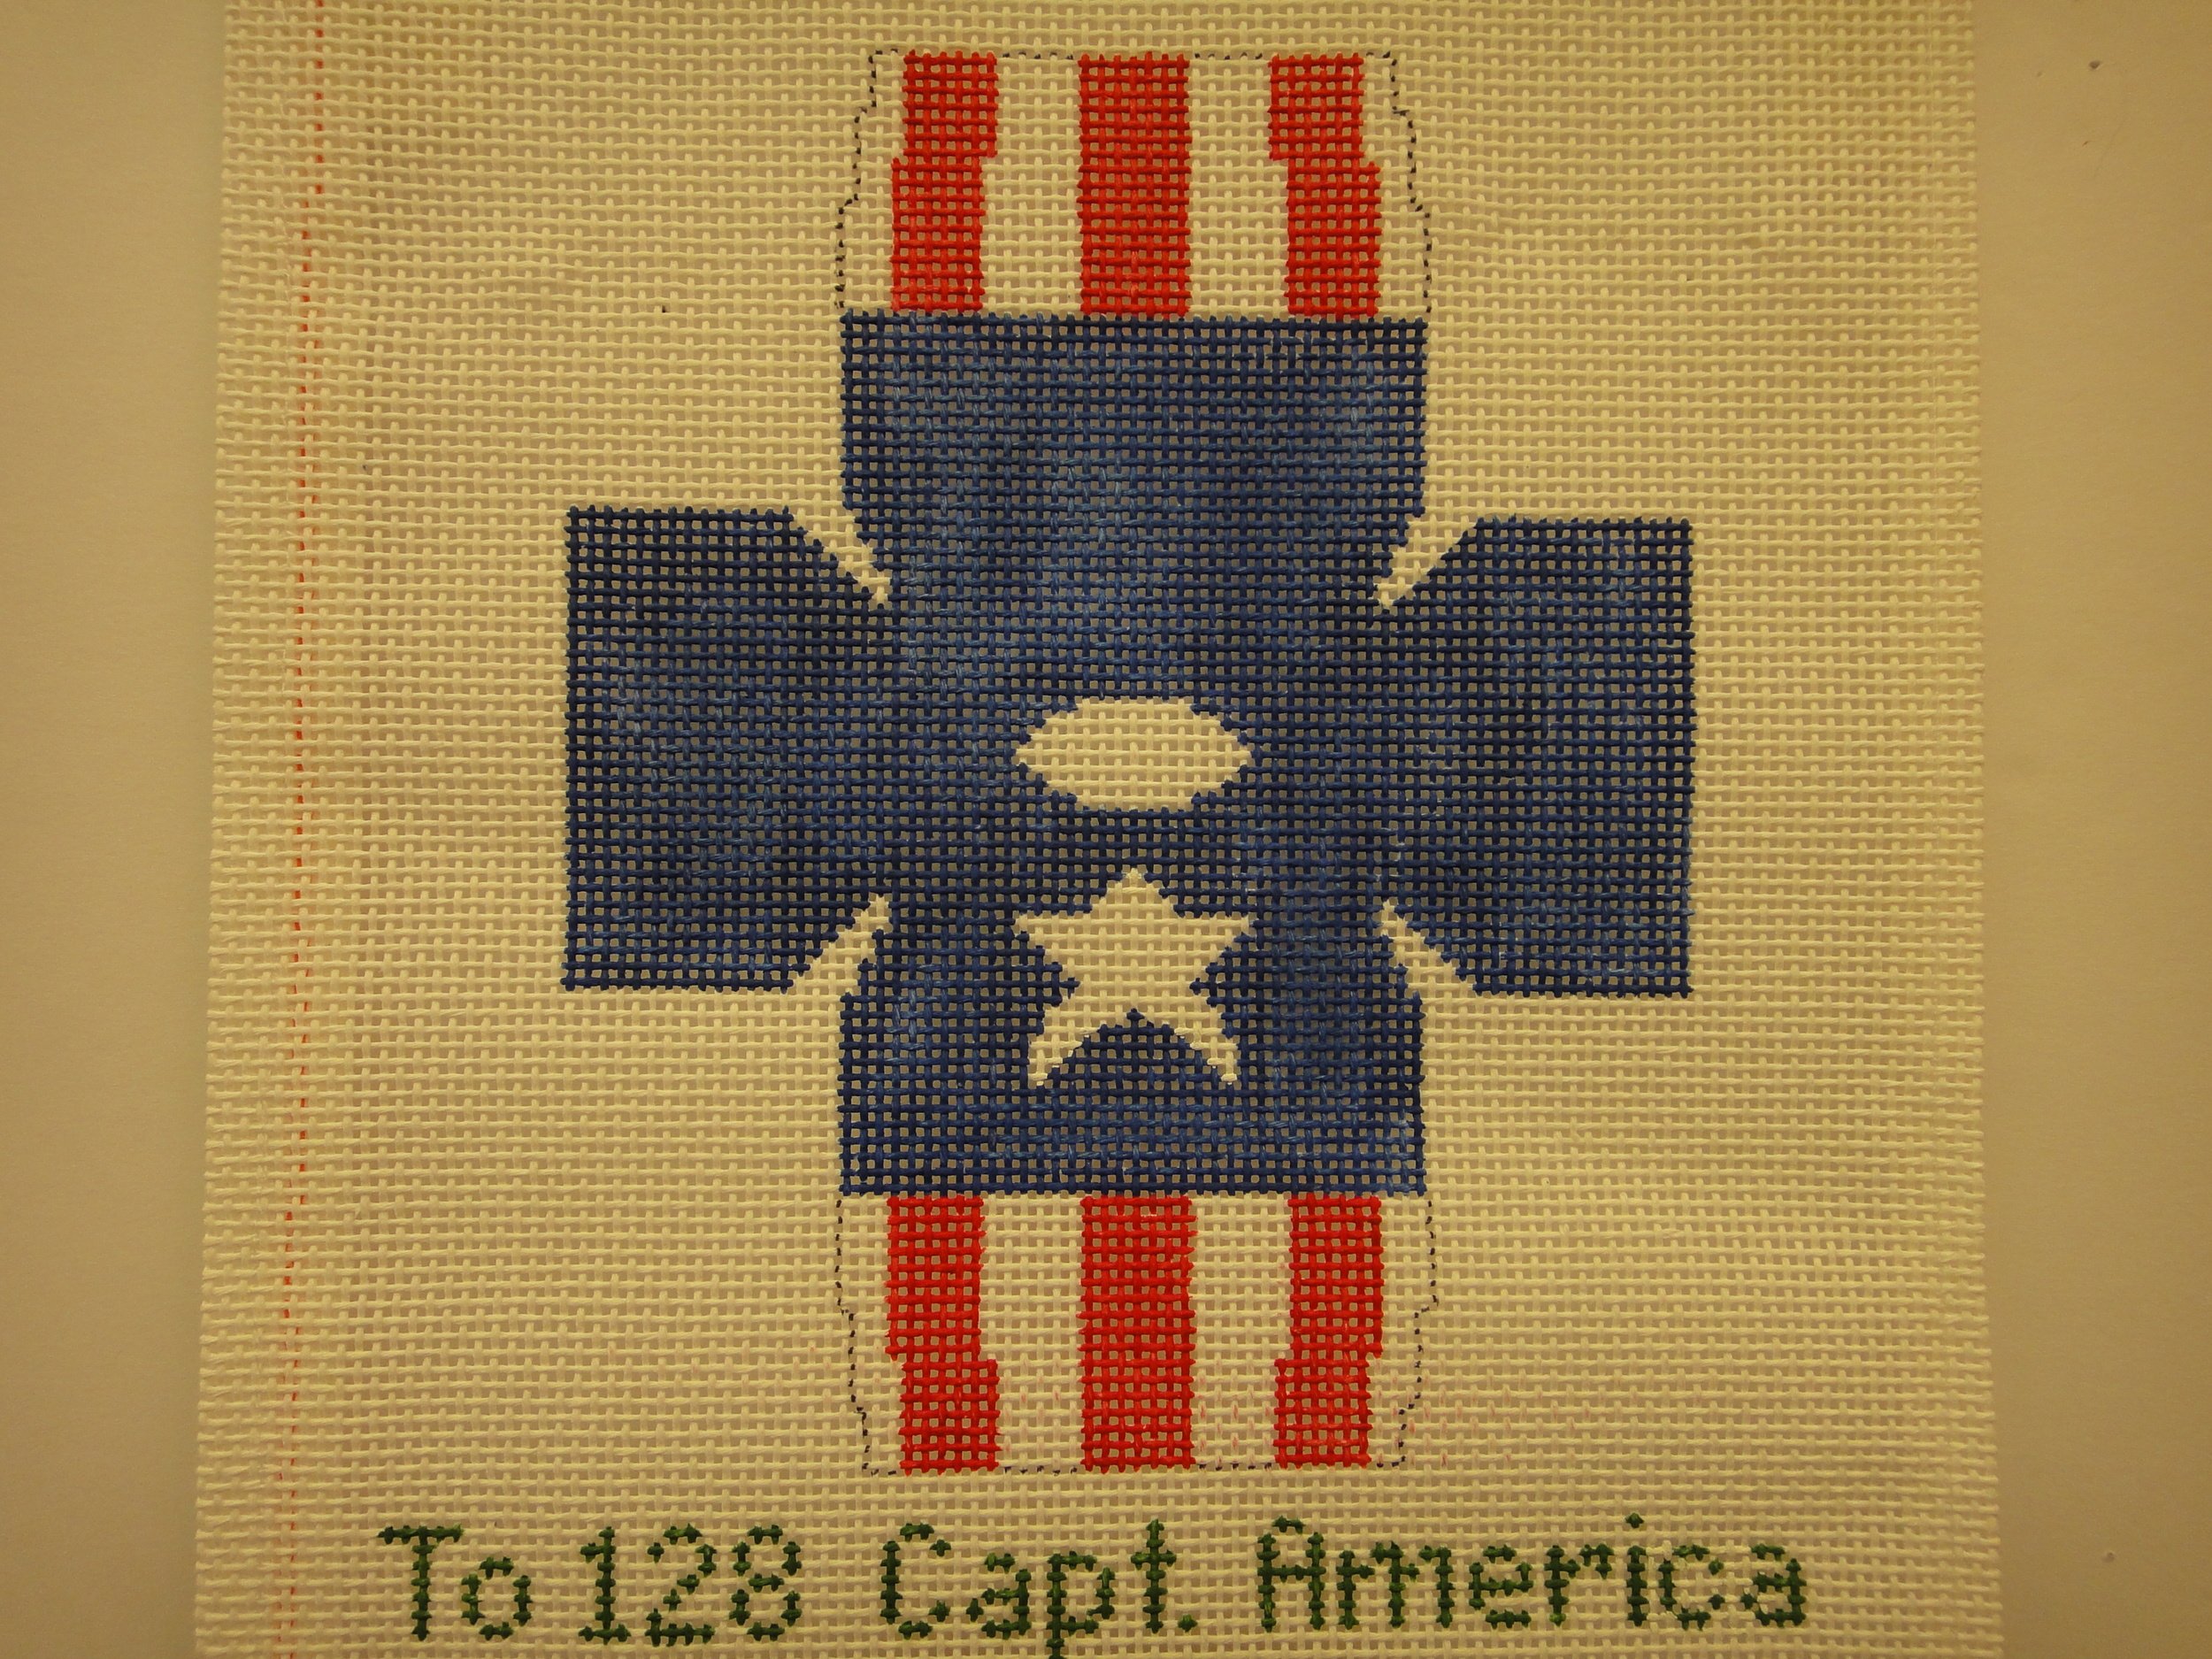 To128 Captain America